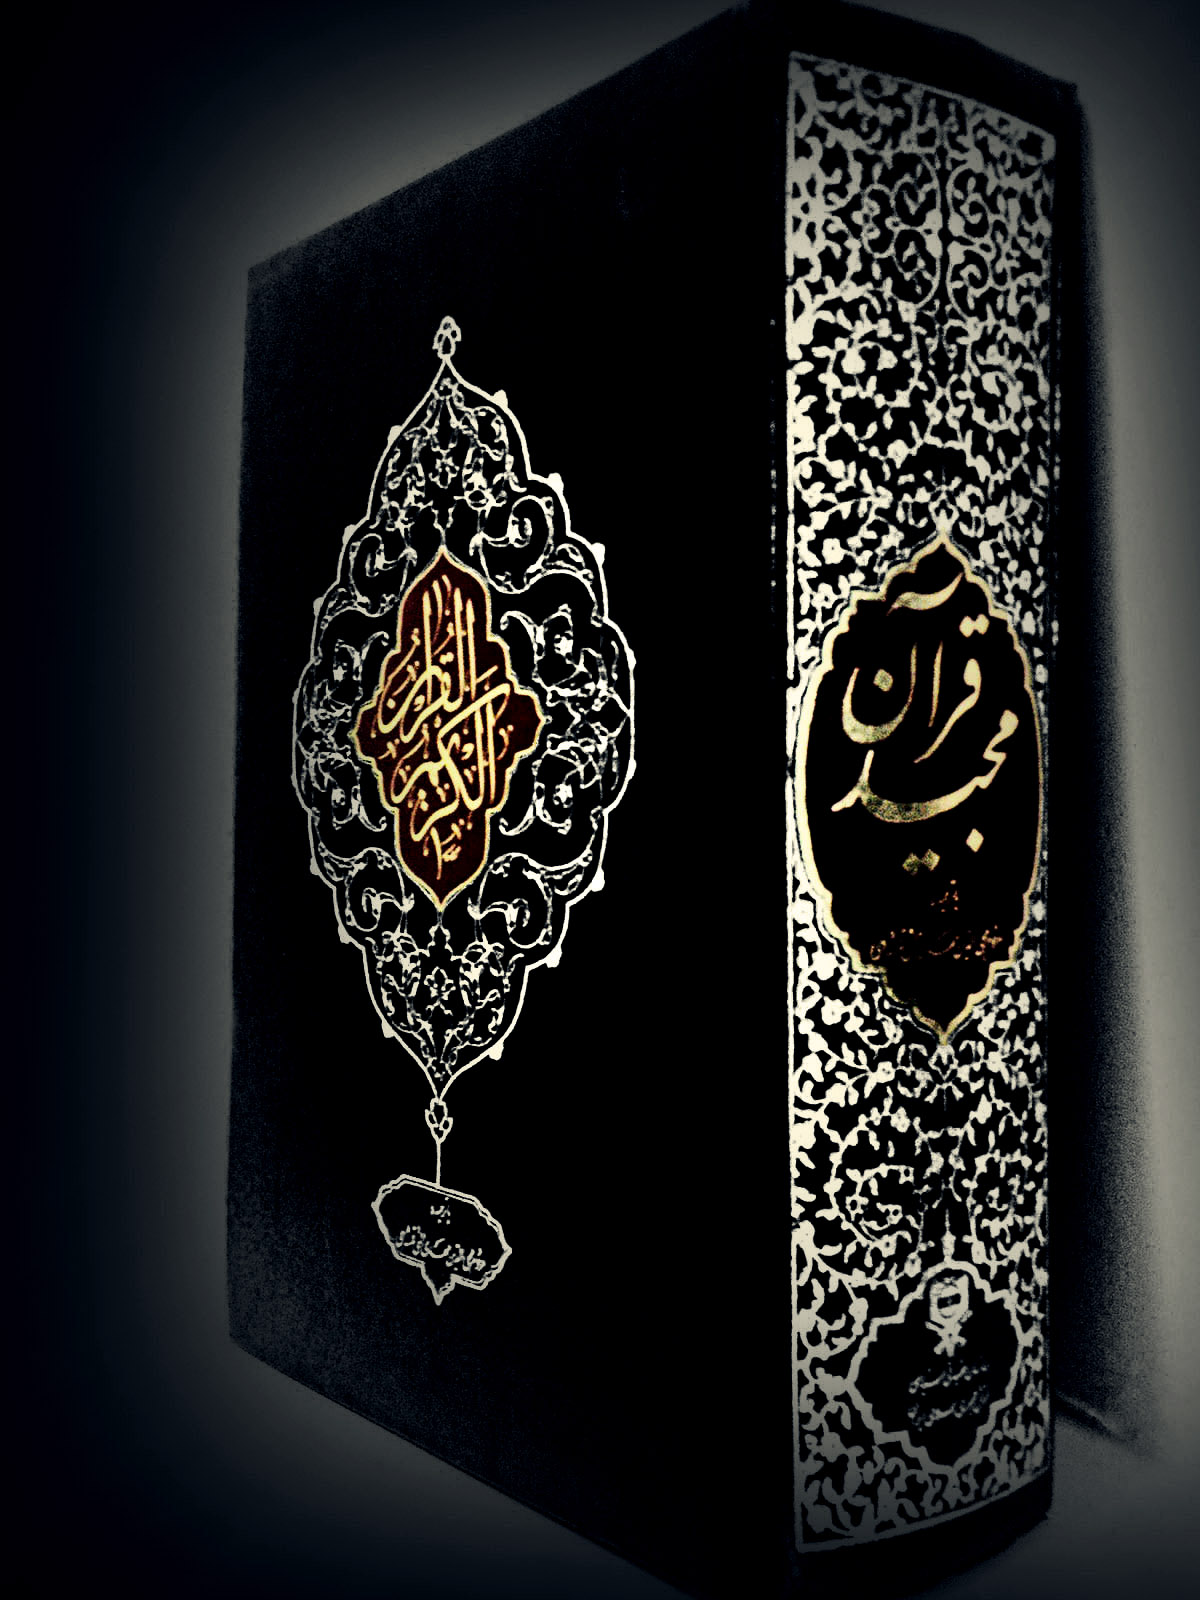 All In One Computer, Mobiles, Software, Keys, Islamic Wallpapers, Others Wallpapers, Videos ...